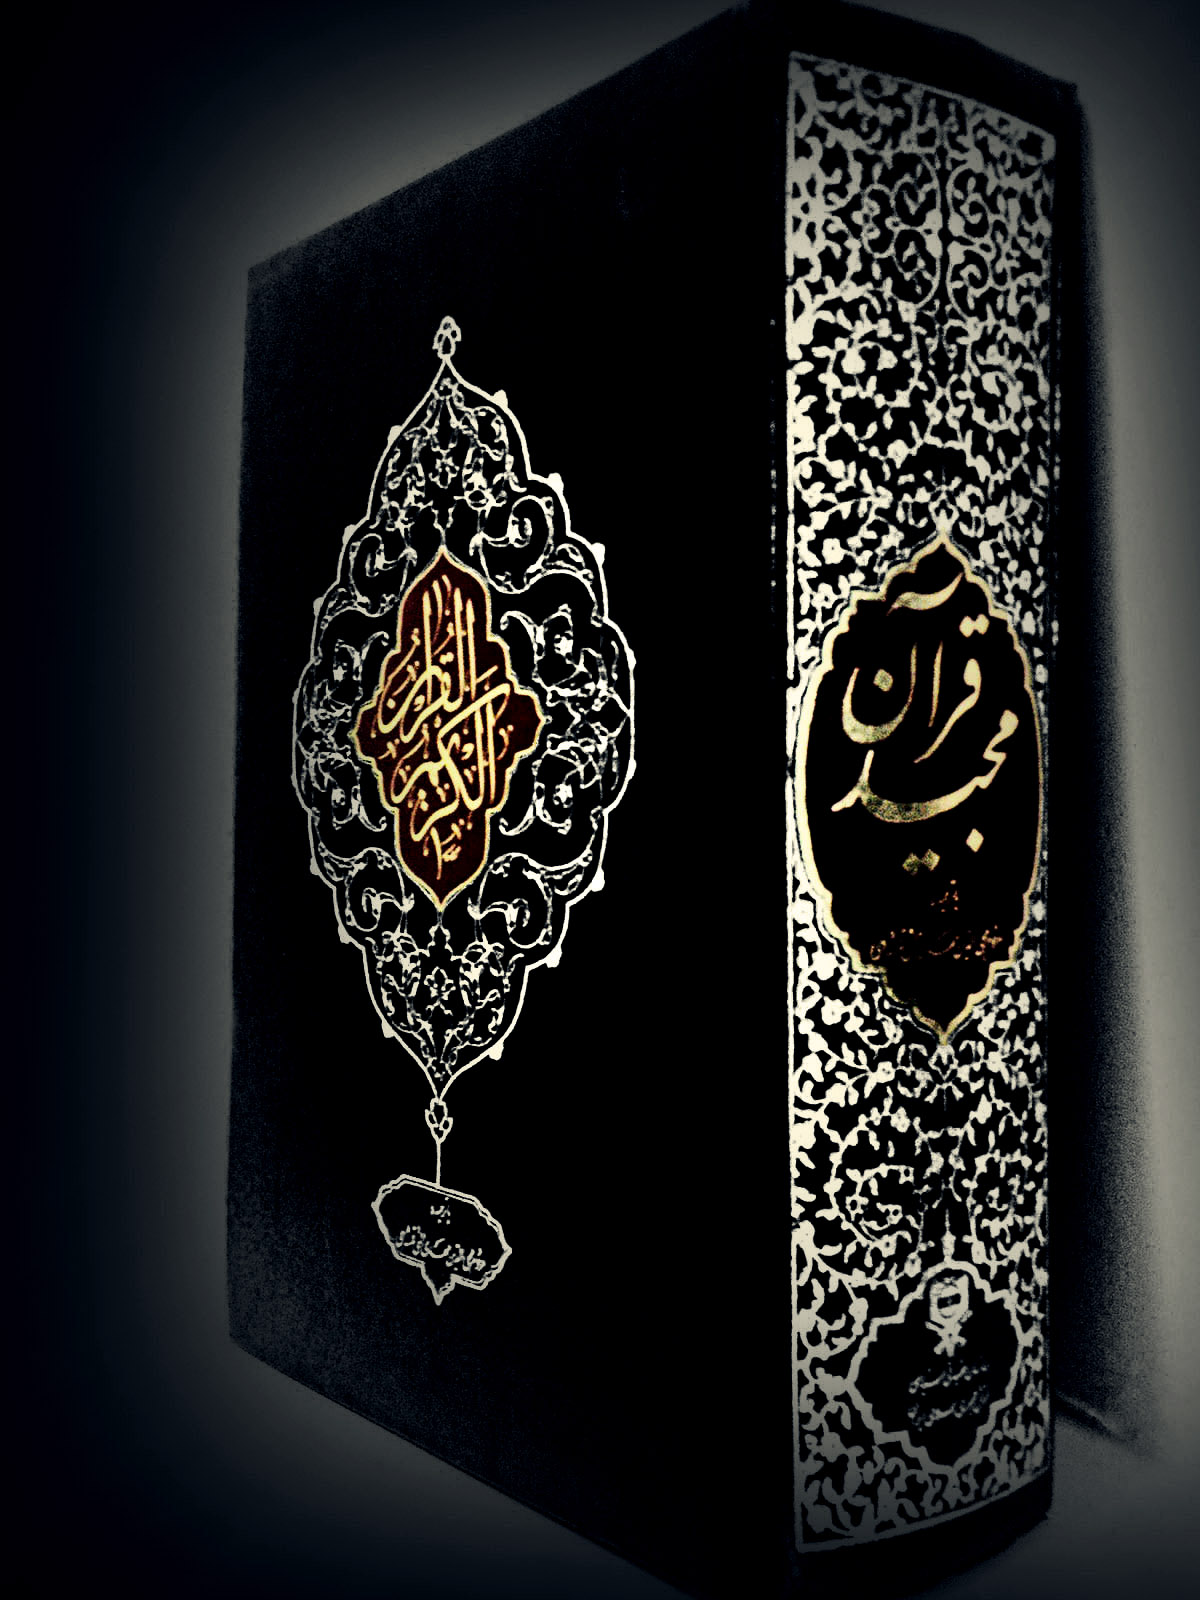 All In One Computer, Mobiles, Software, Keys, Islamic Wallpapers, Others Wallpapers, Videos ...